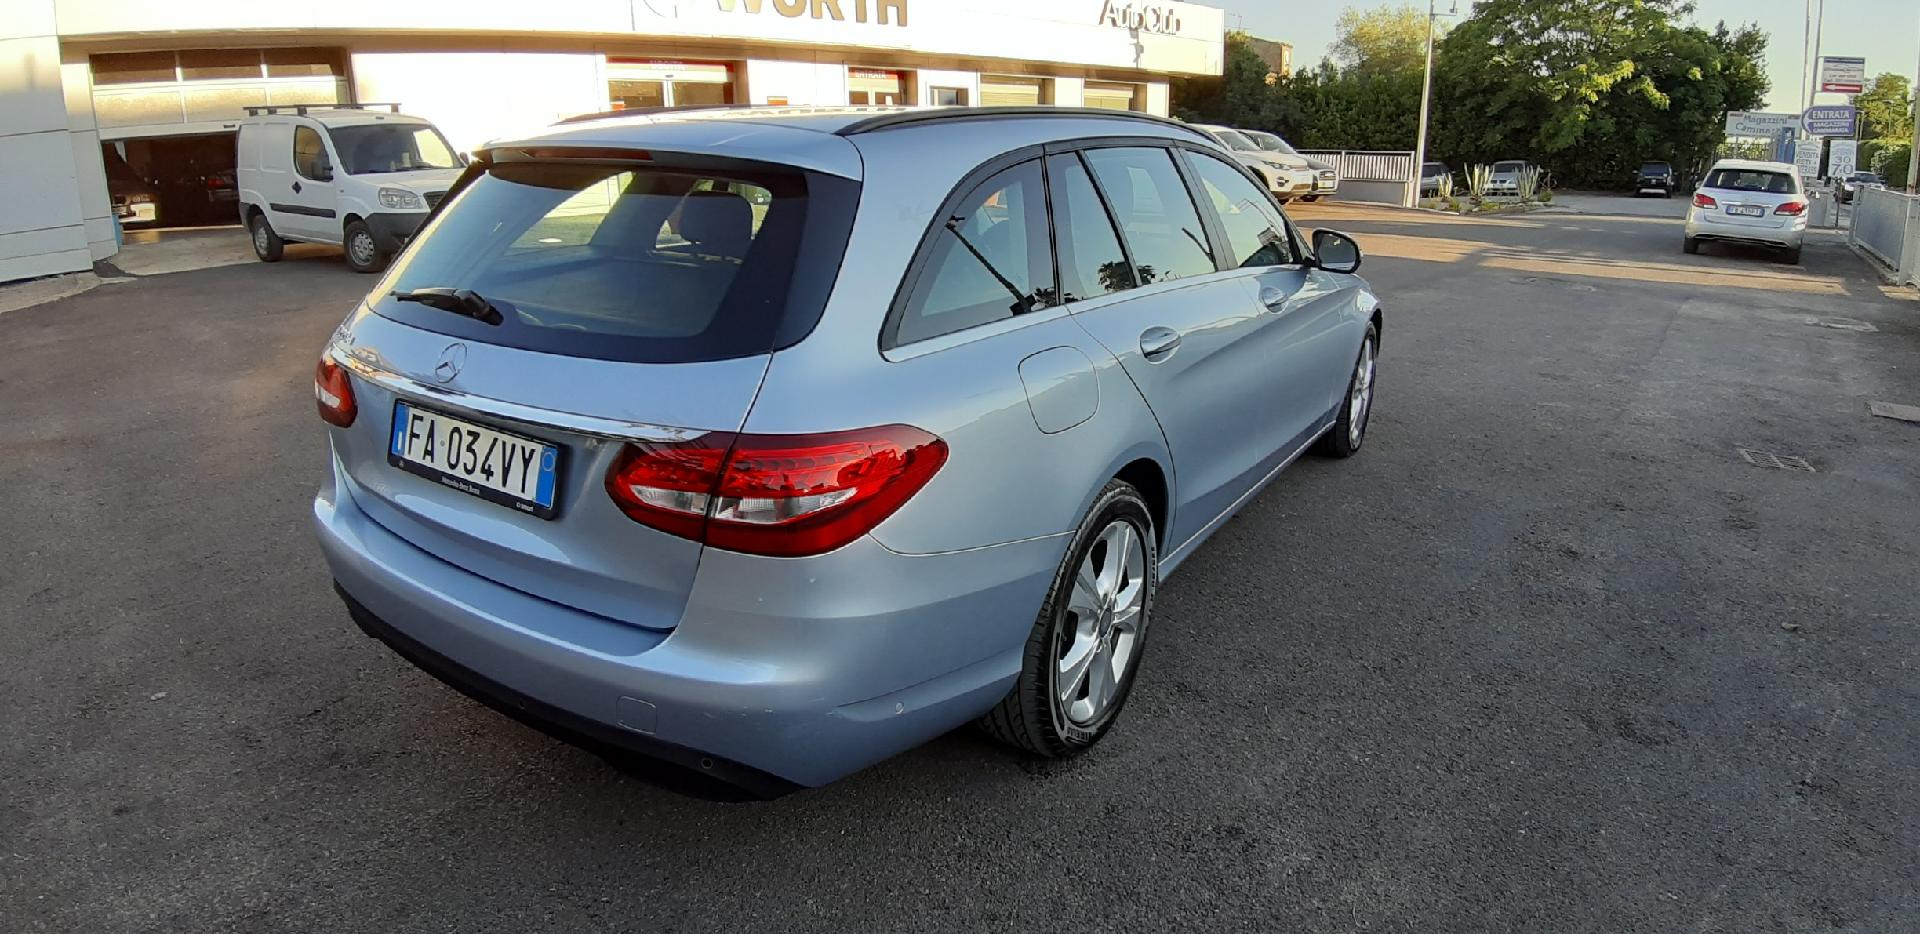 Mercedes-Benz C220 CDI EXECUTIVE 170cv Diesel